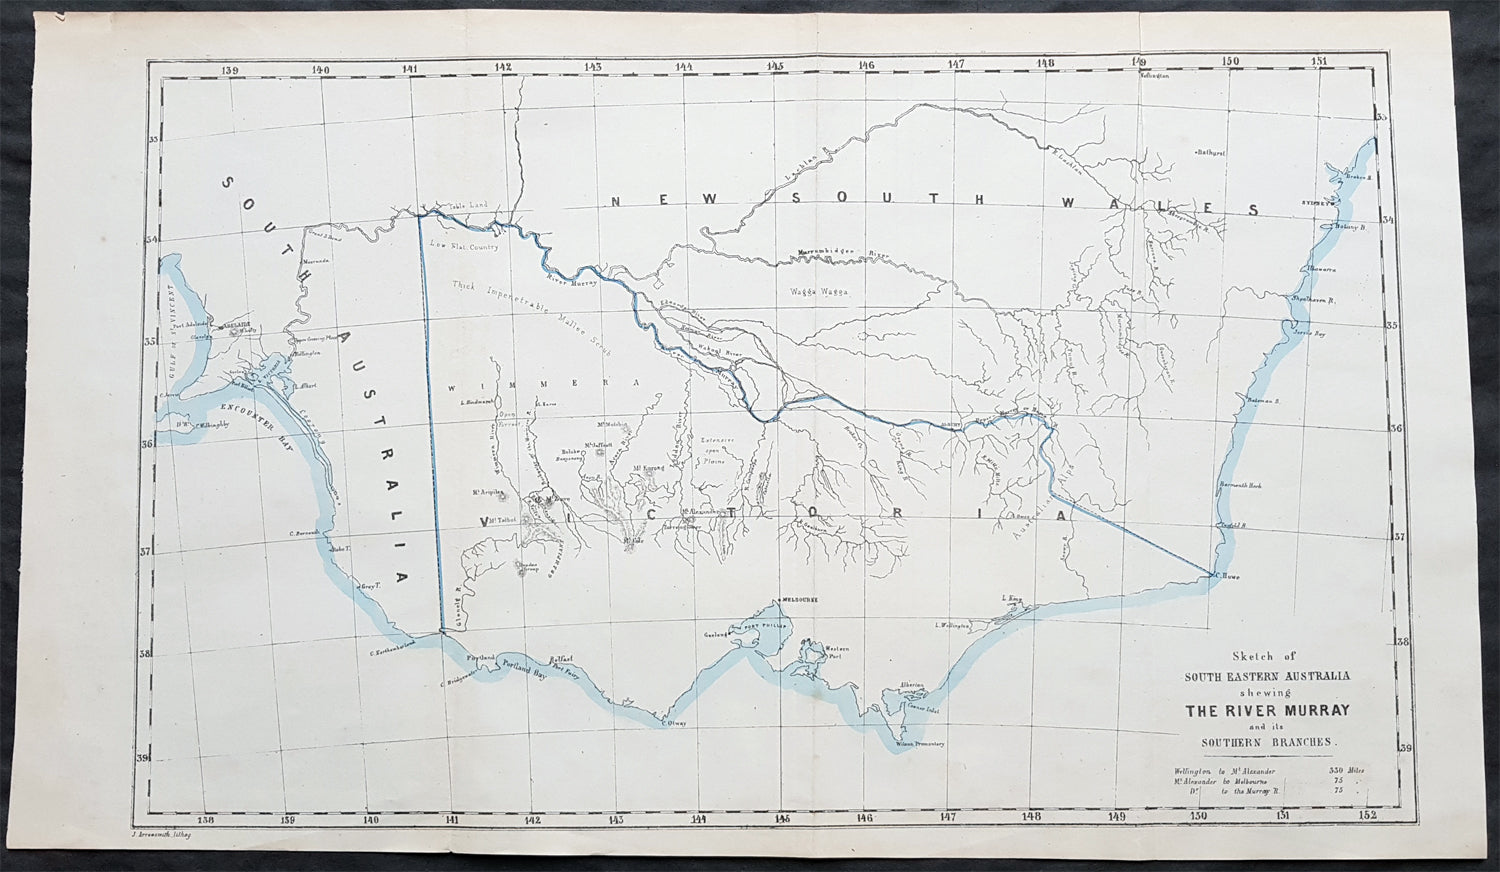 Map Eastern Australia.1853 John Arrowsmith Rare Antique Map Of The River Murray Victoria Australia